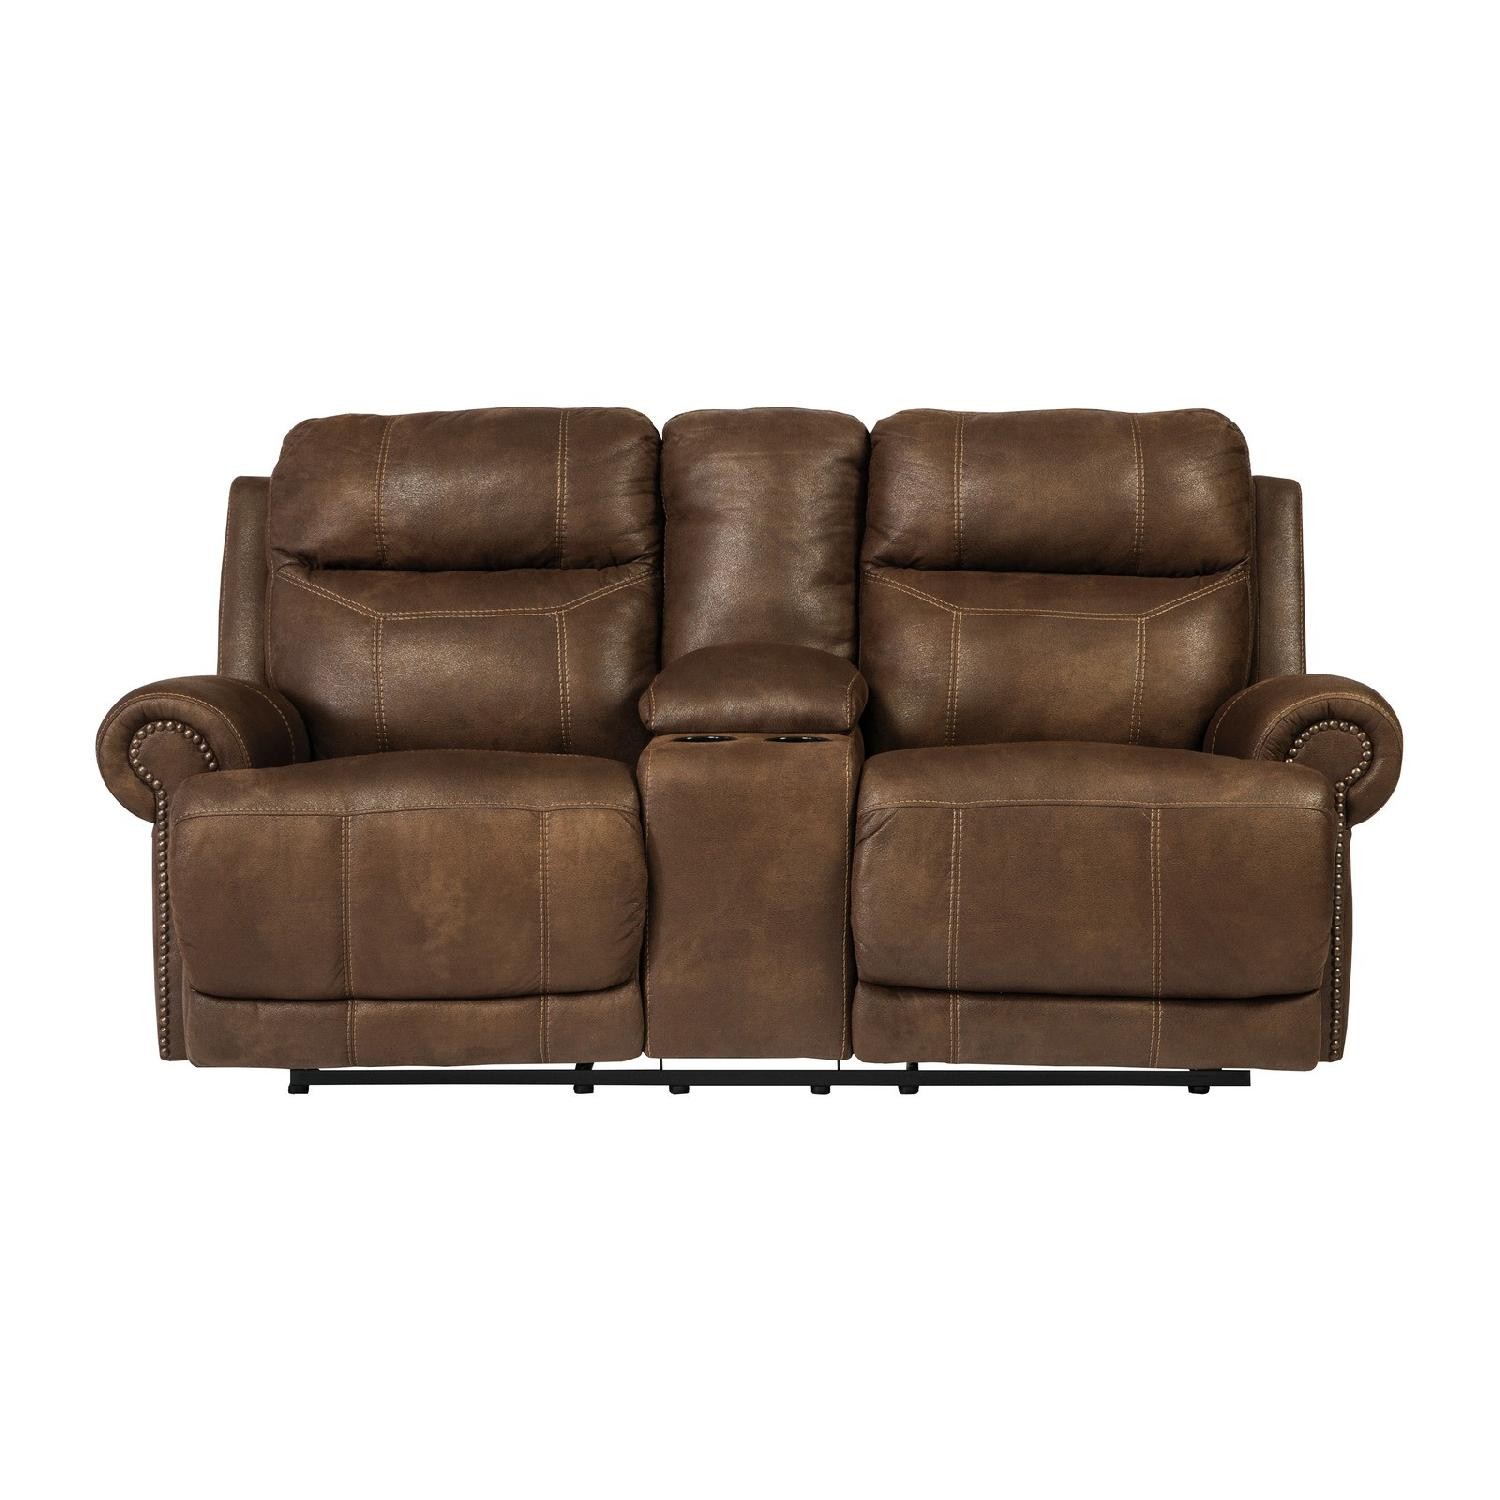 Ashley Austere Double Reclining Sofa W/ Console In Brown ...